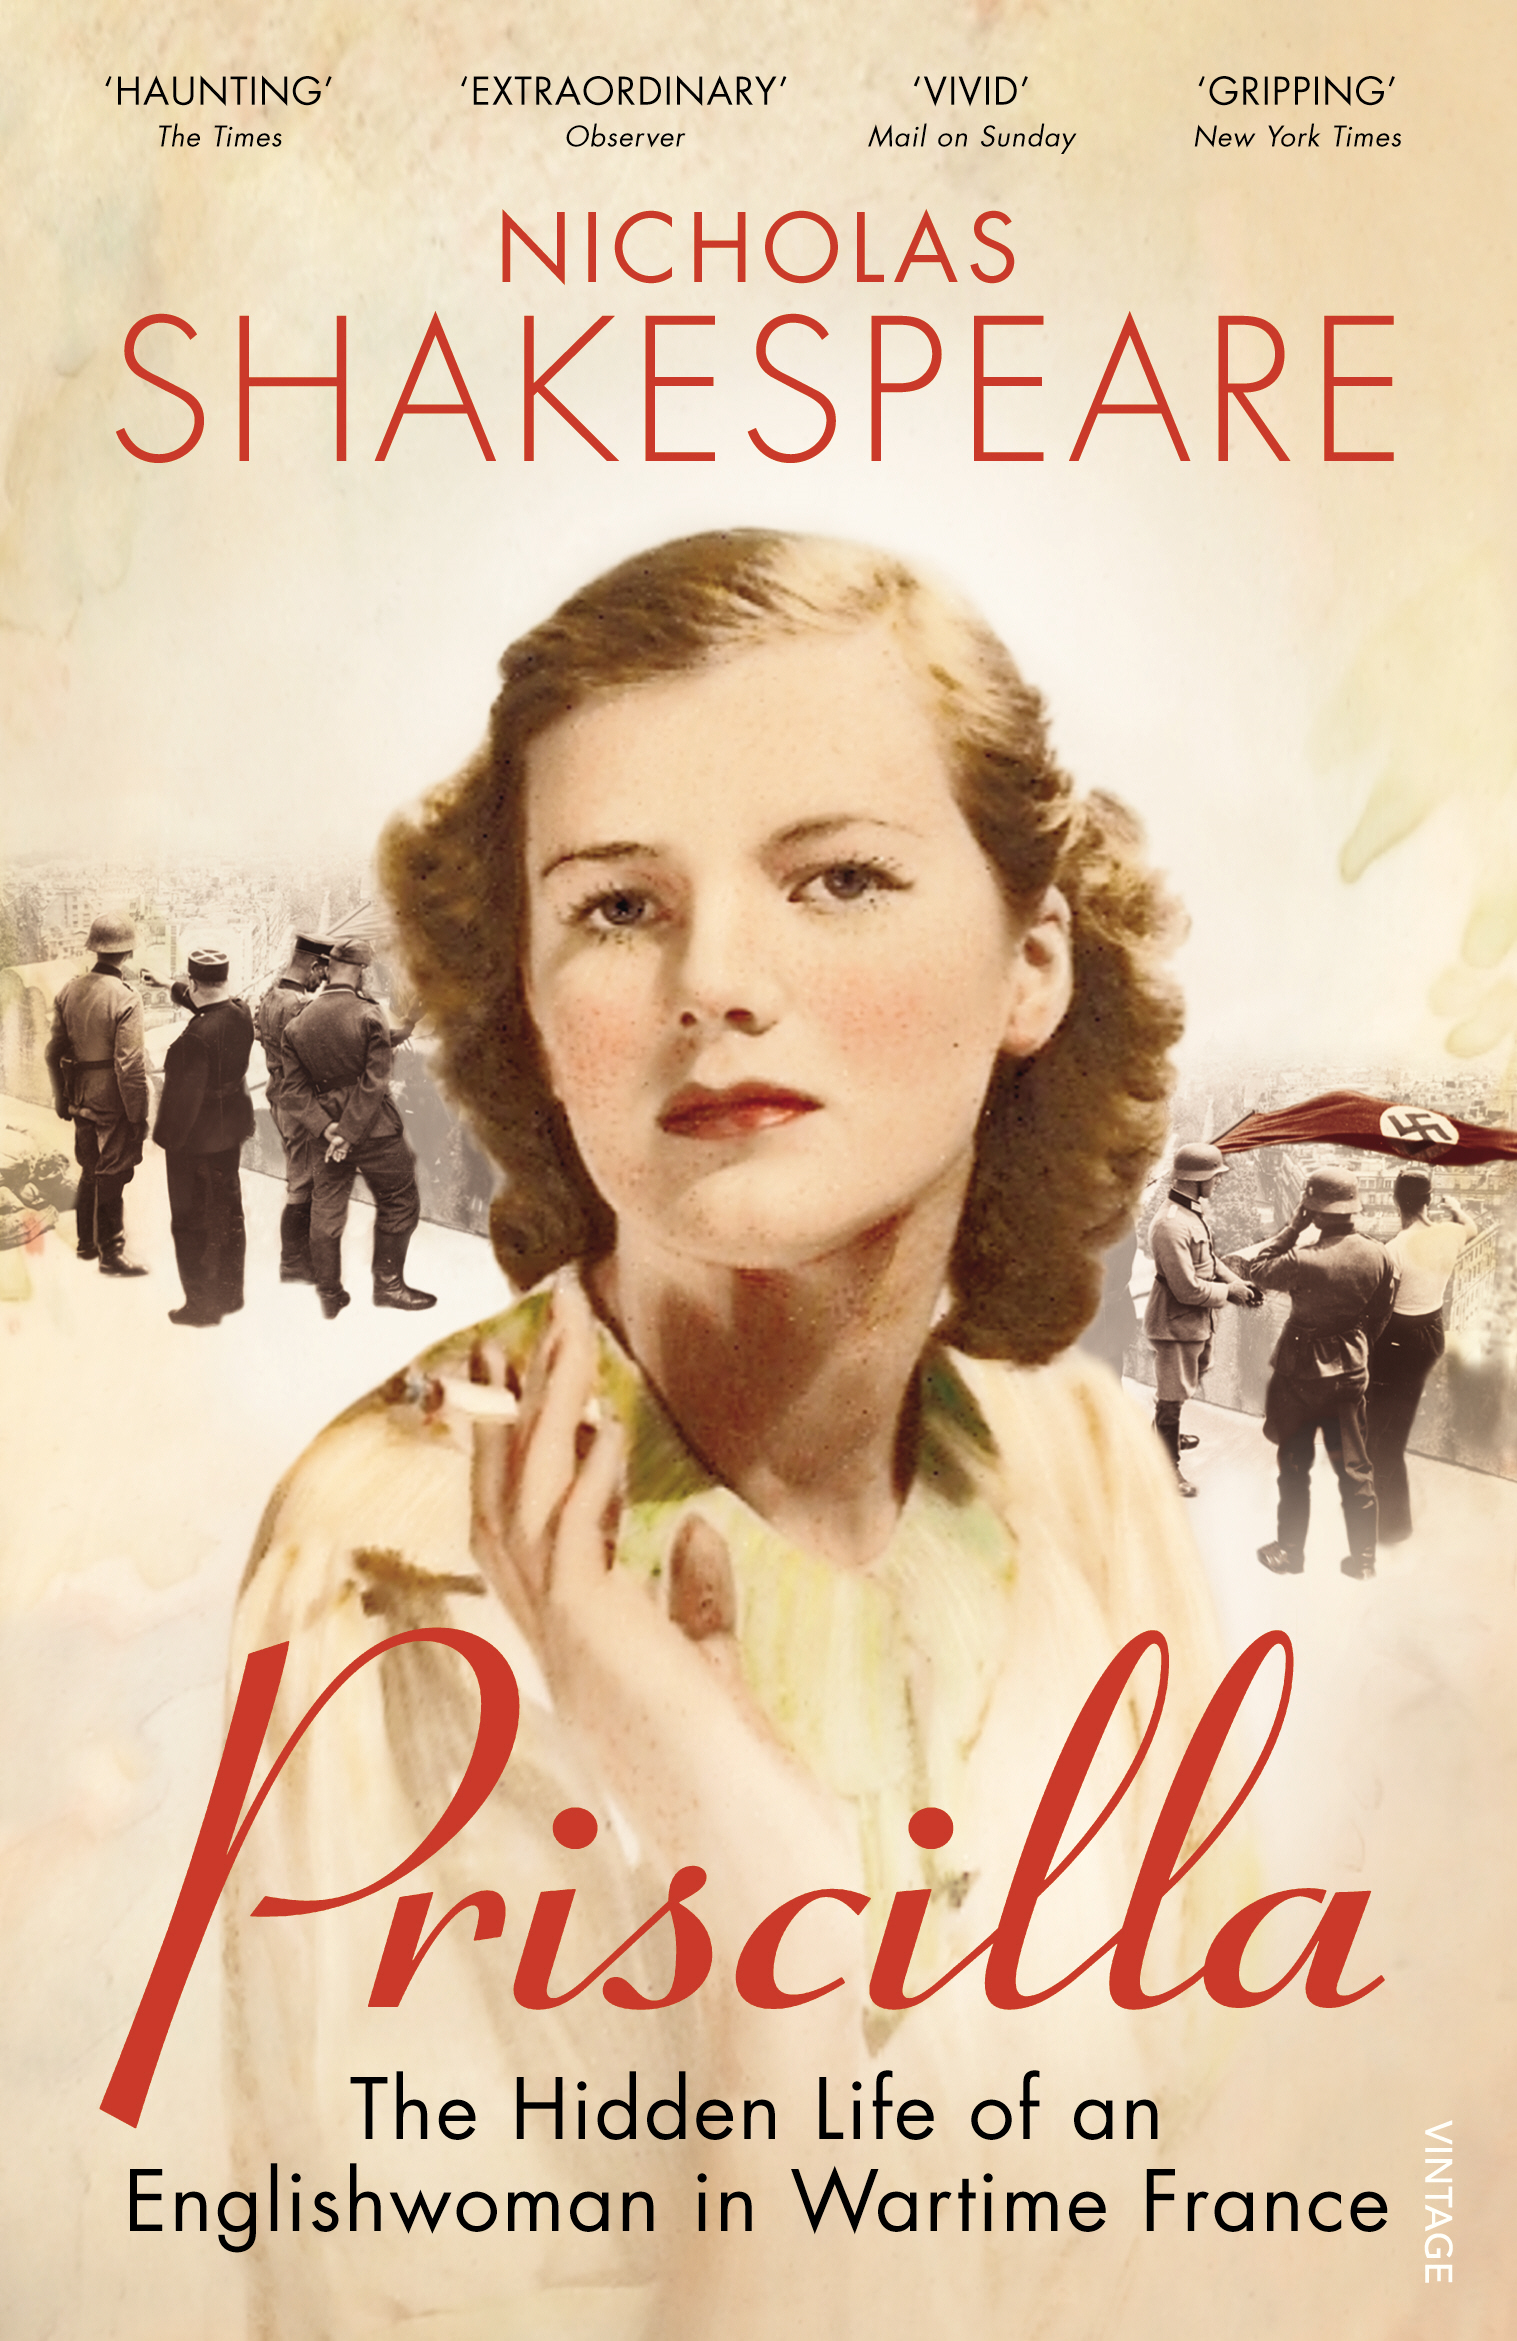 Priscilla The Hidden Life of an Englishwoman in Wartime France